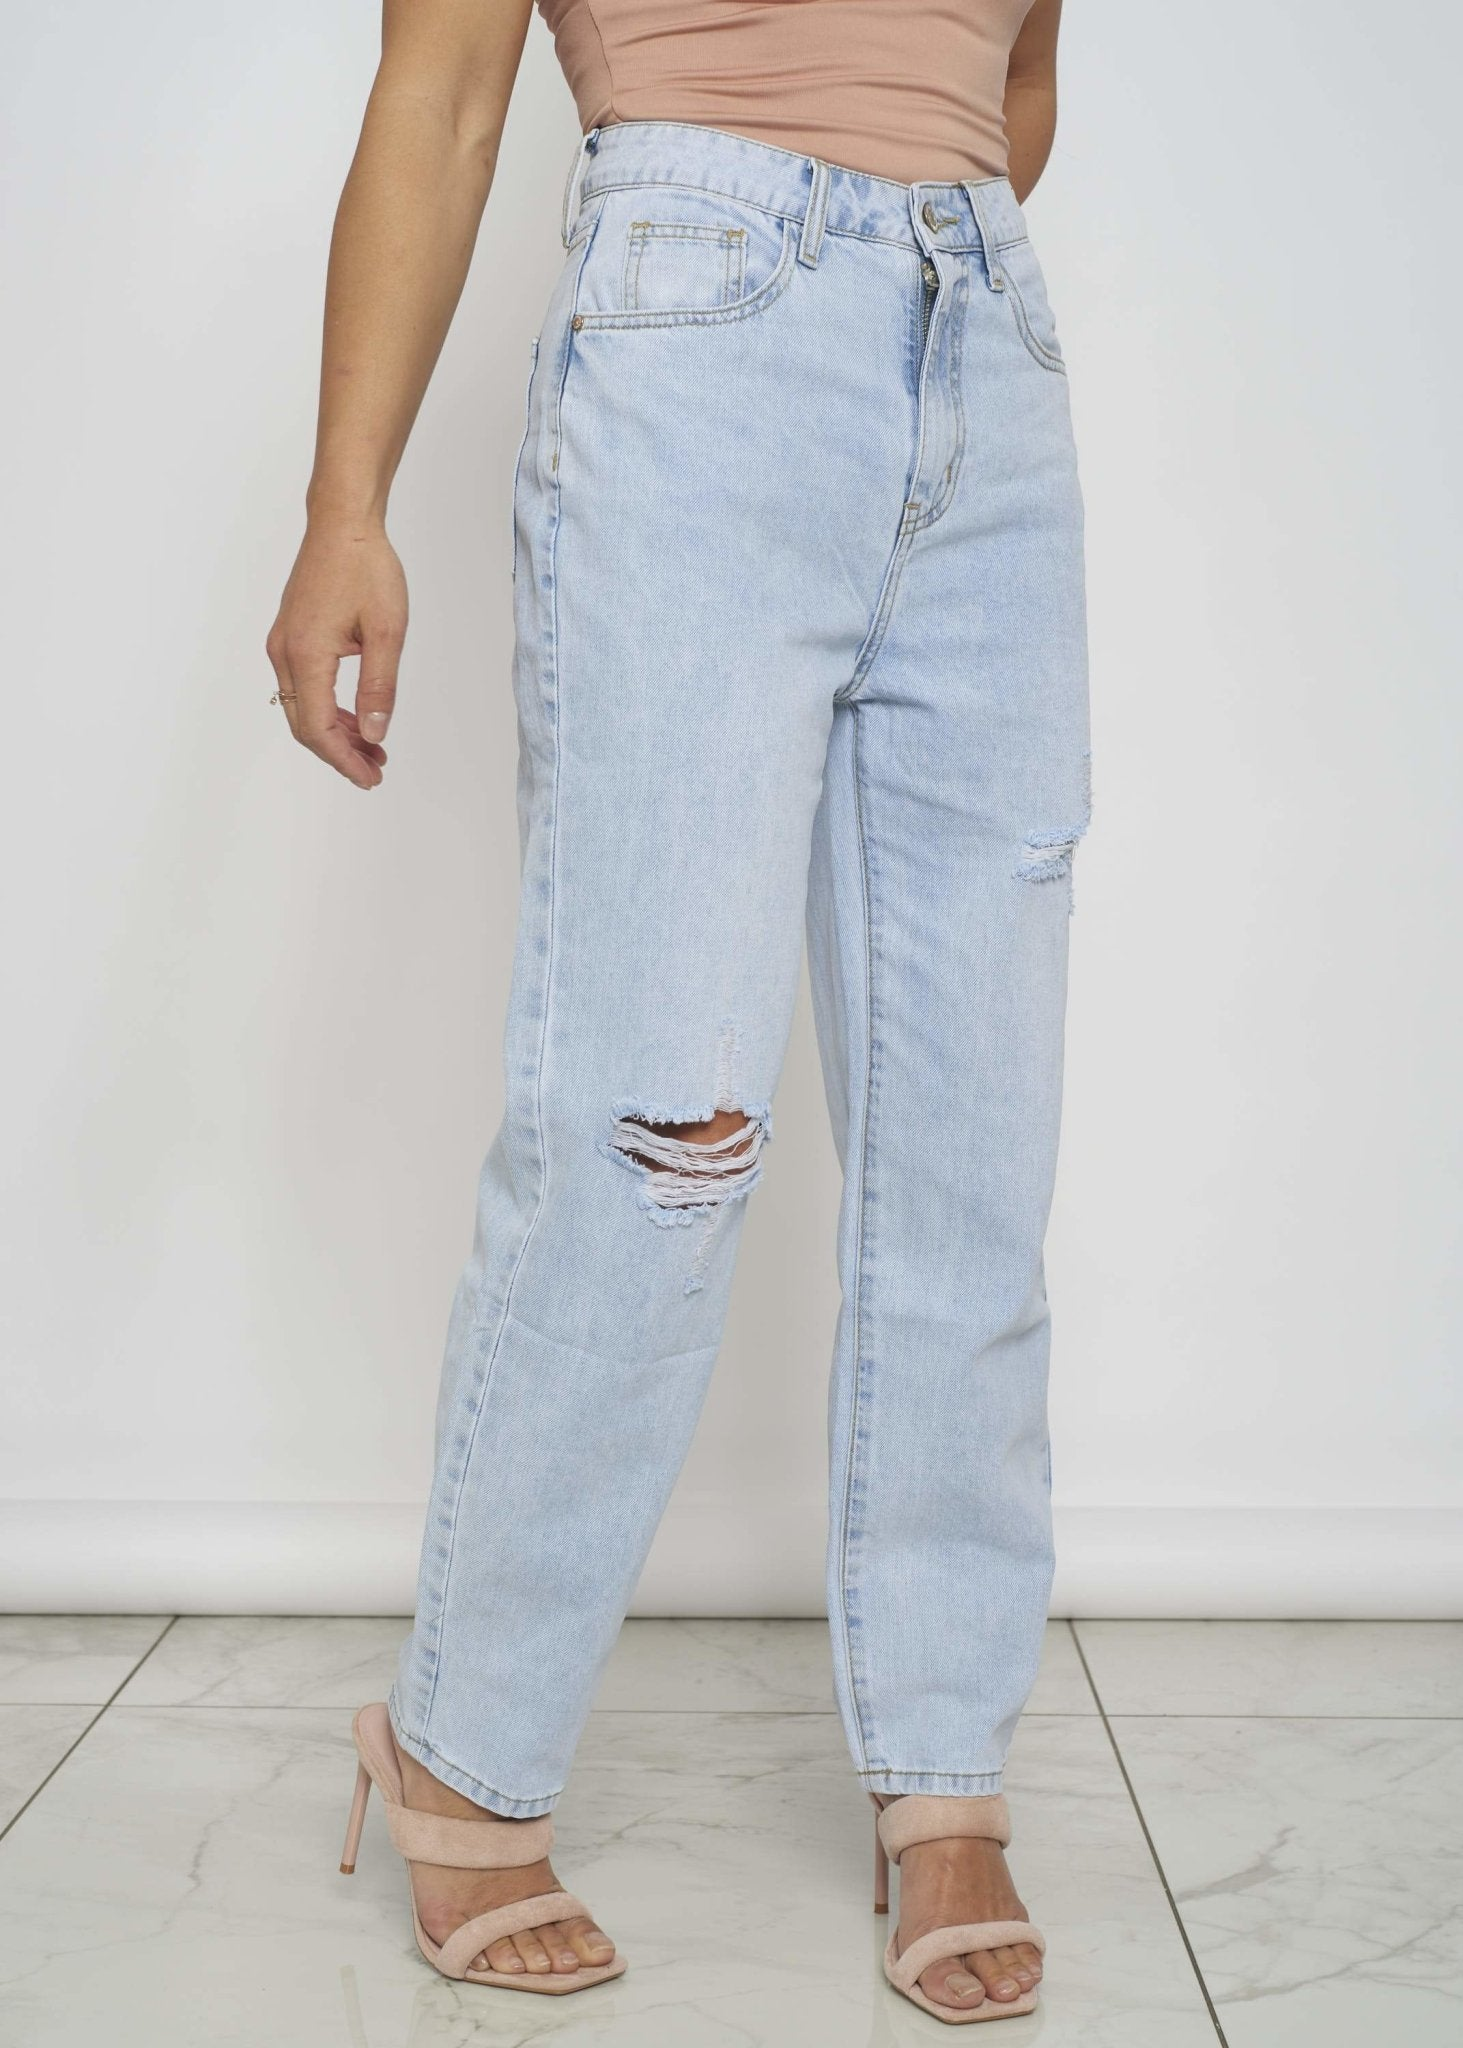 Shauna Distressed Mom Jean In Light Wash - The Walk in Wardrobe